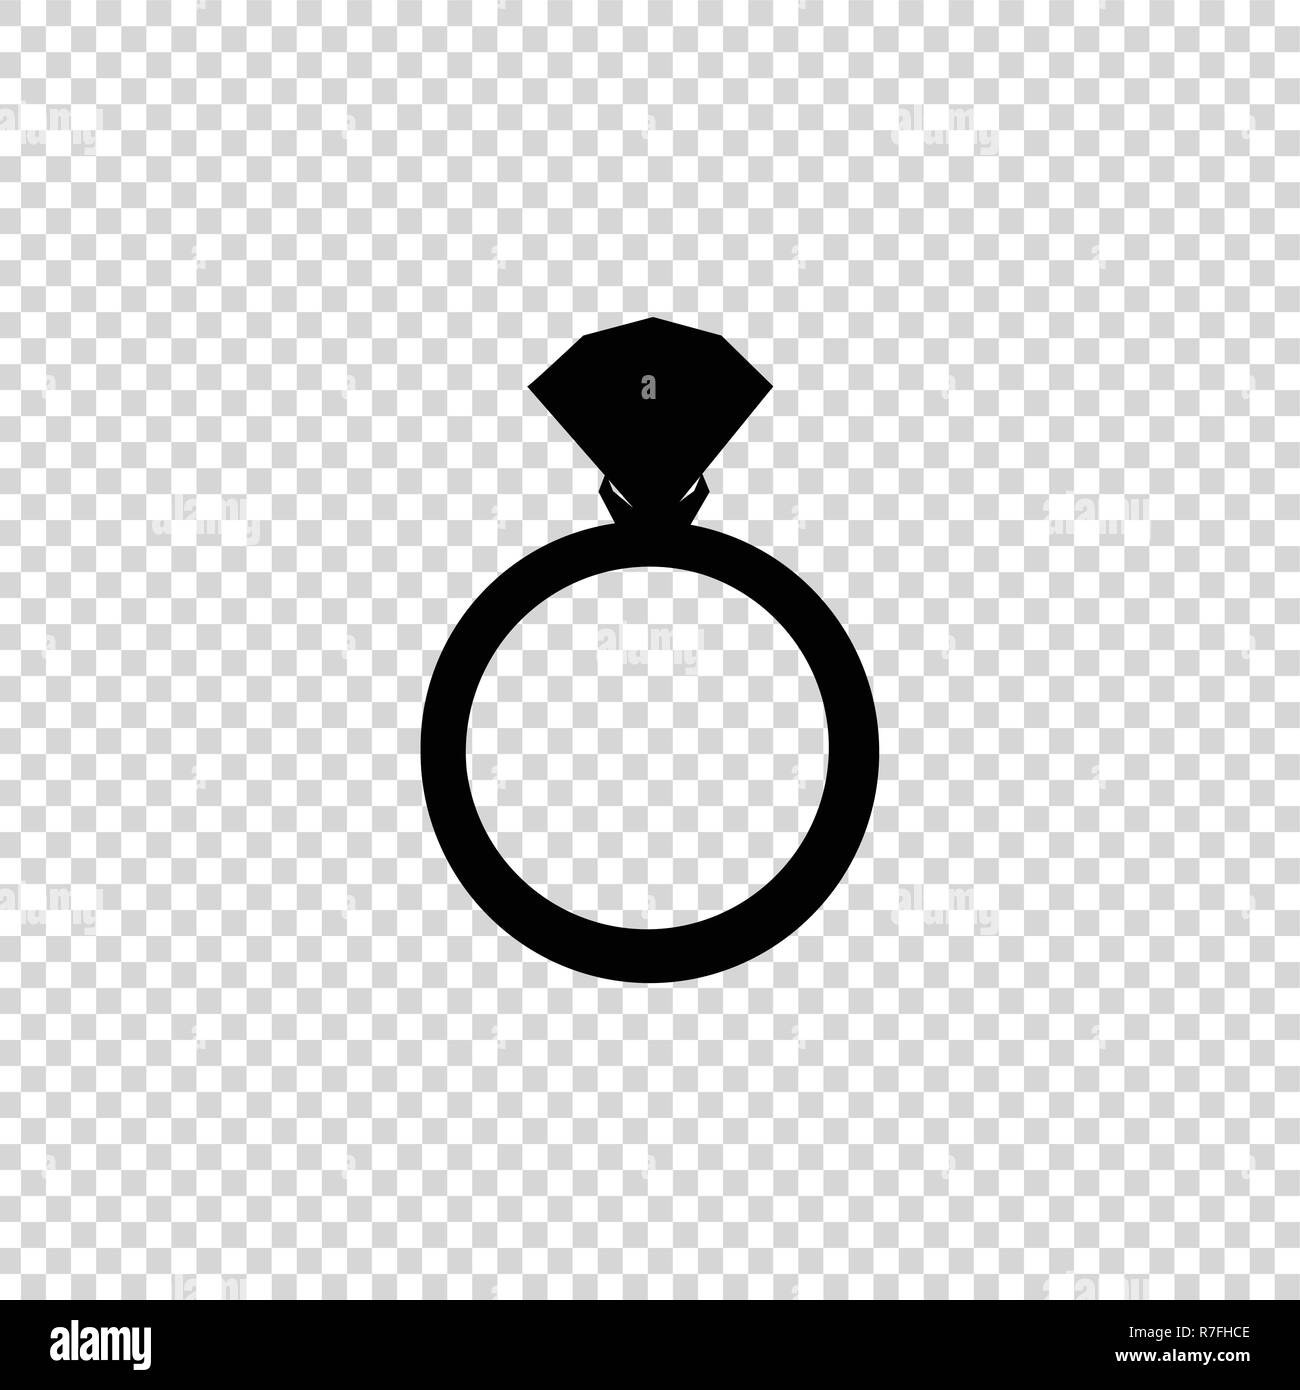 Vector Black Silhouette Of Engagement Ring With Diamond Isolated On